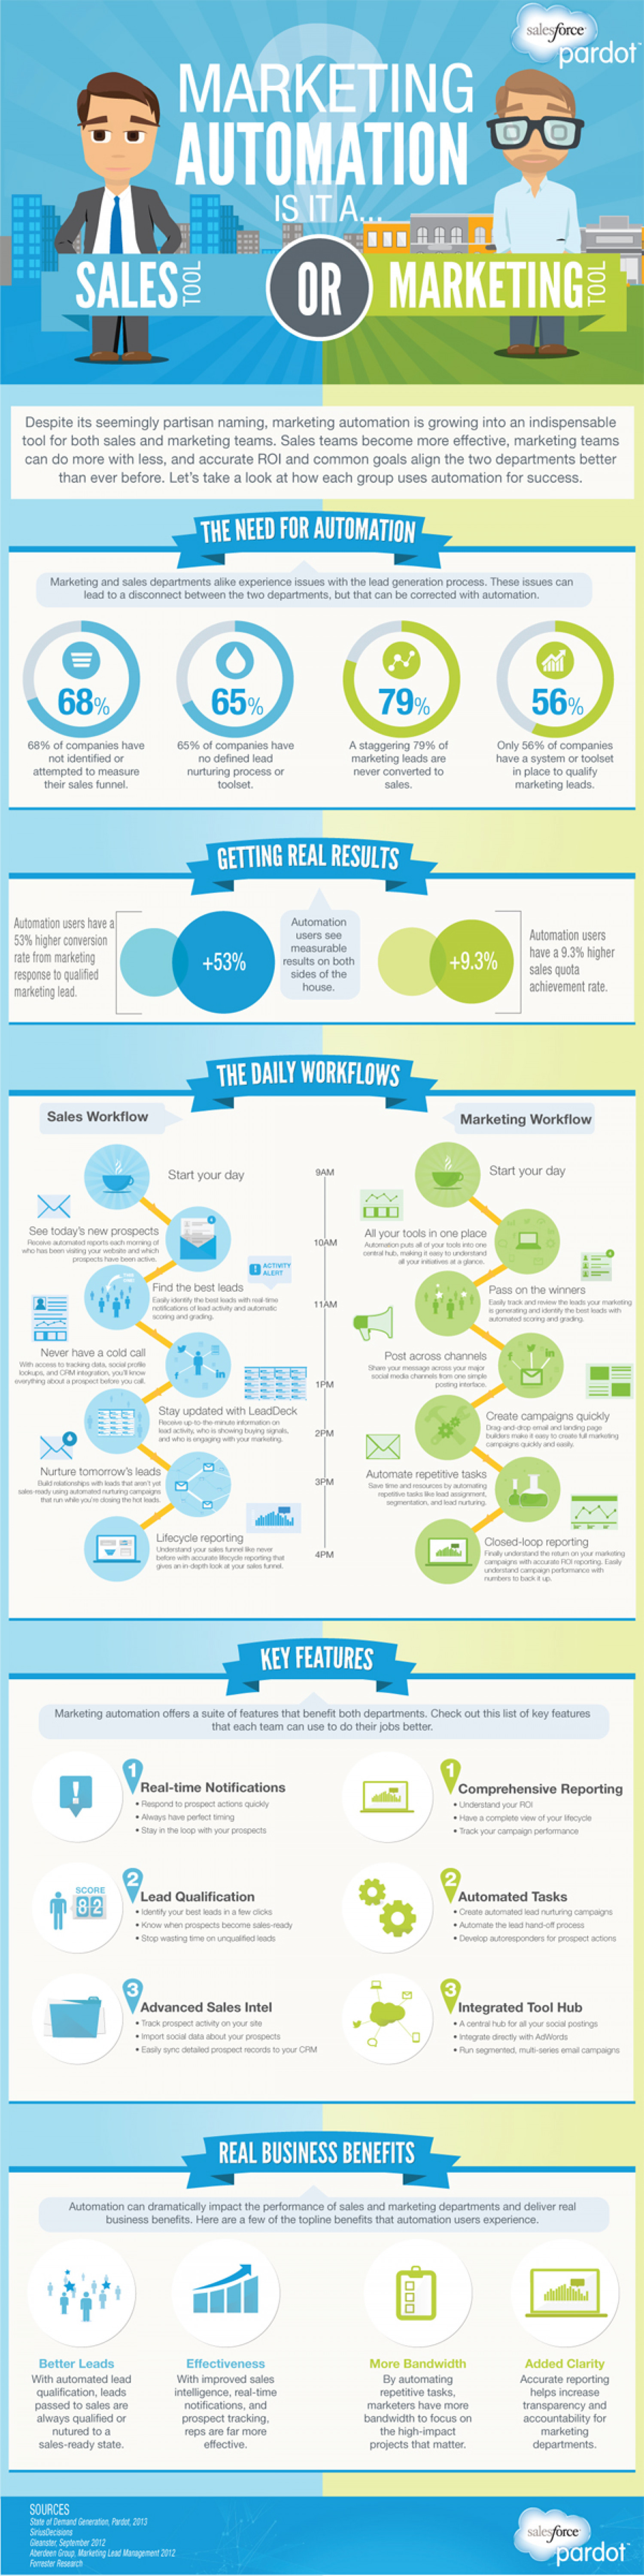 Marking Automation: Sales or Marketing Tool? Infographic